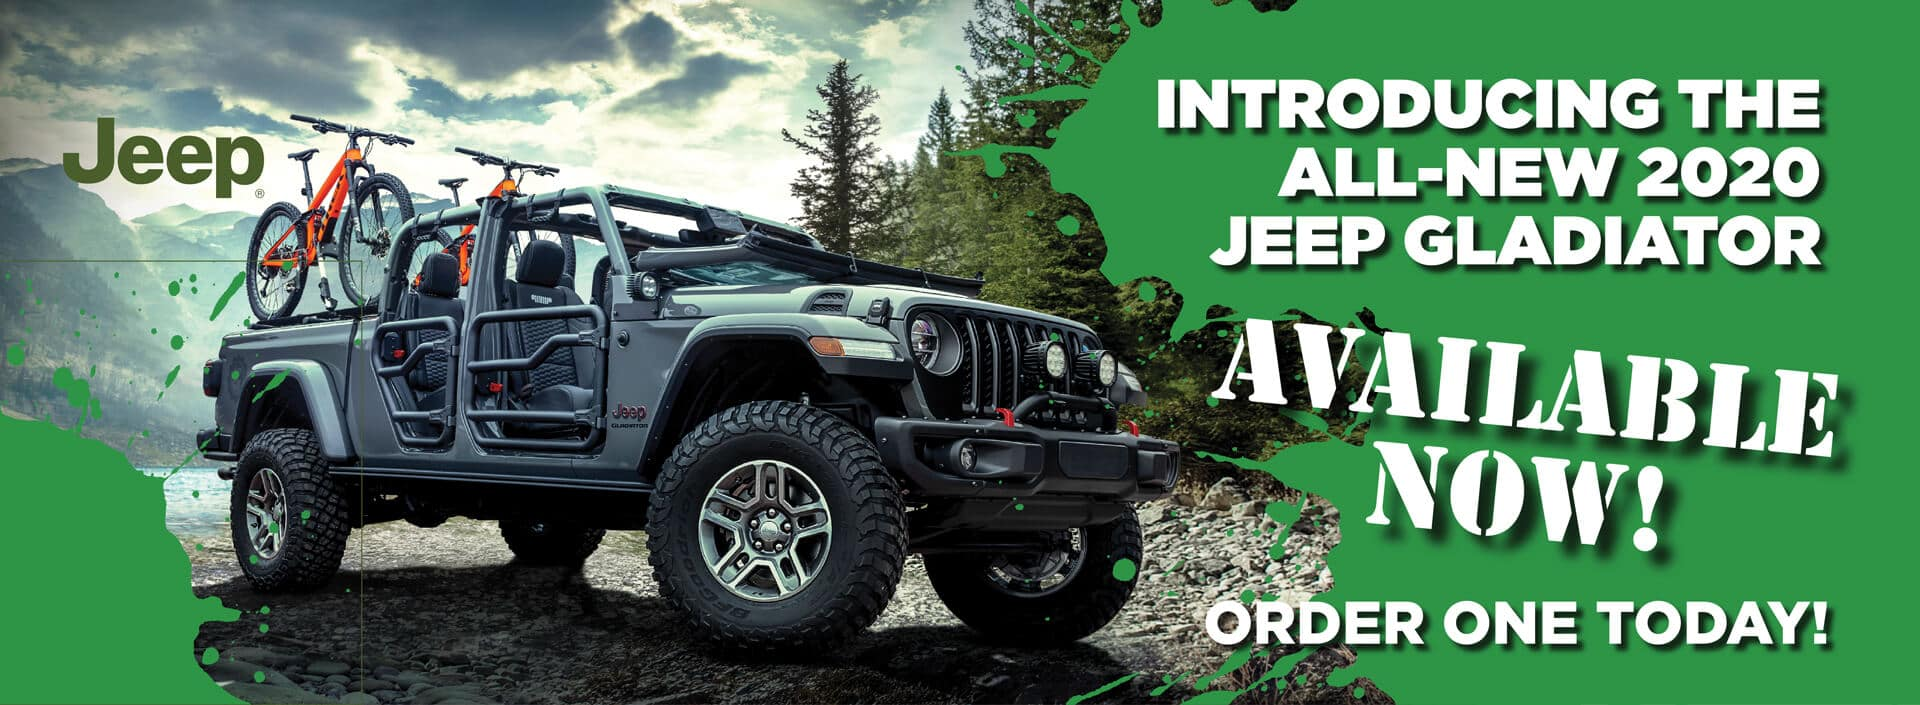 2020 Jeep Gladiator Available Now